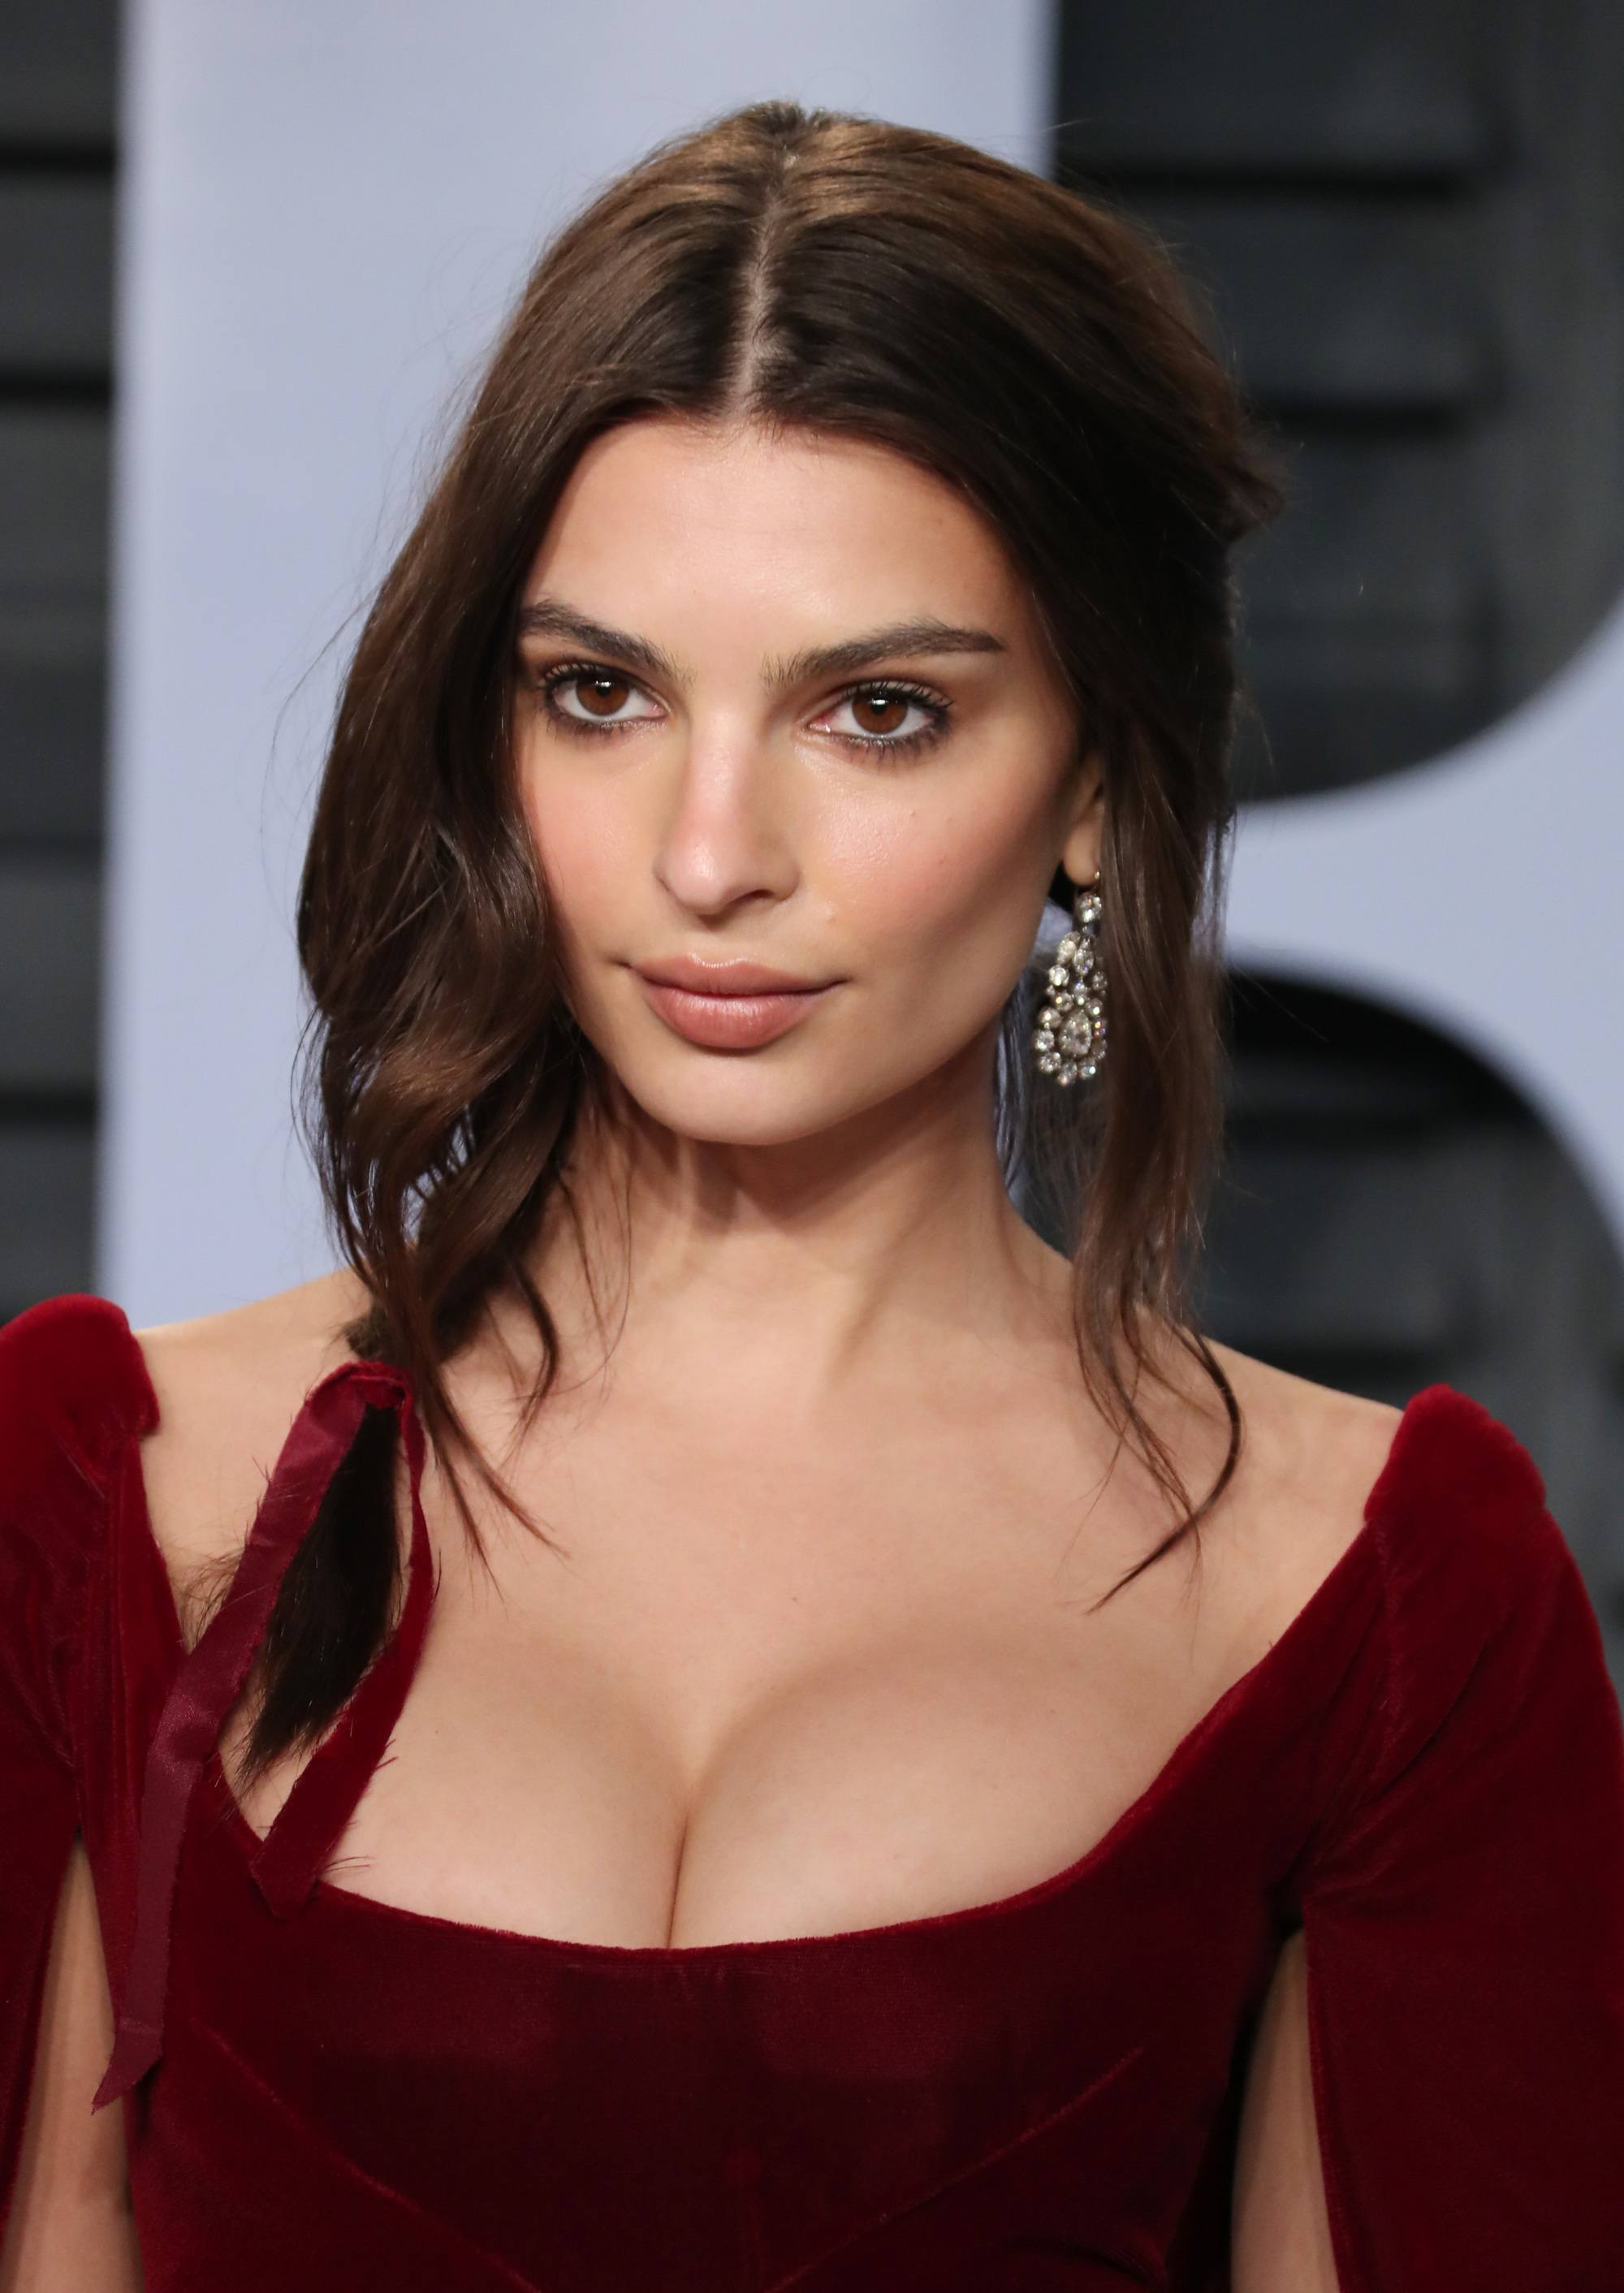 Side hairstyles: Emily Ratajkowski with her dark hair in a side braid with a red velvet ribbon, wearing a matching red velvet dress